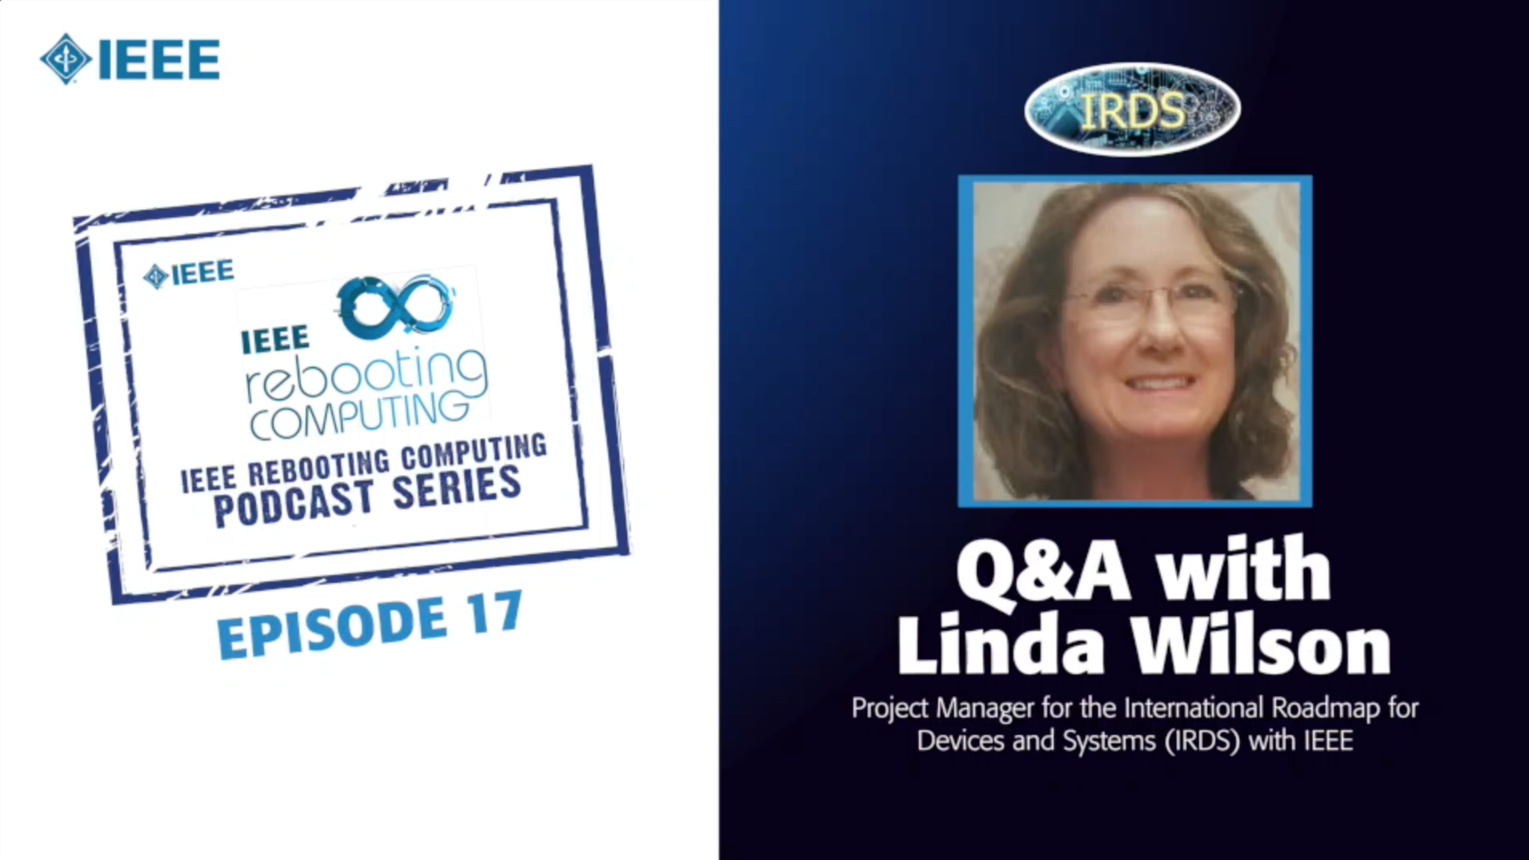 Q&A with Linda Wilson: IEEE Rebooting Computing Podcast, Episode 17